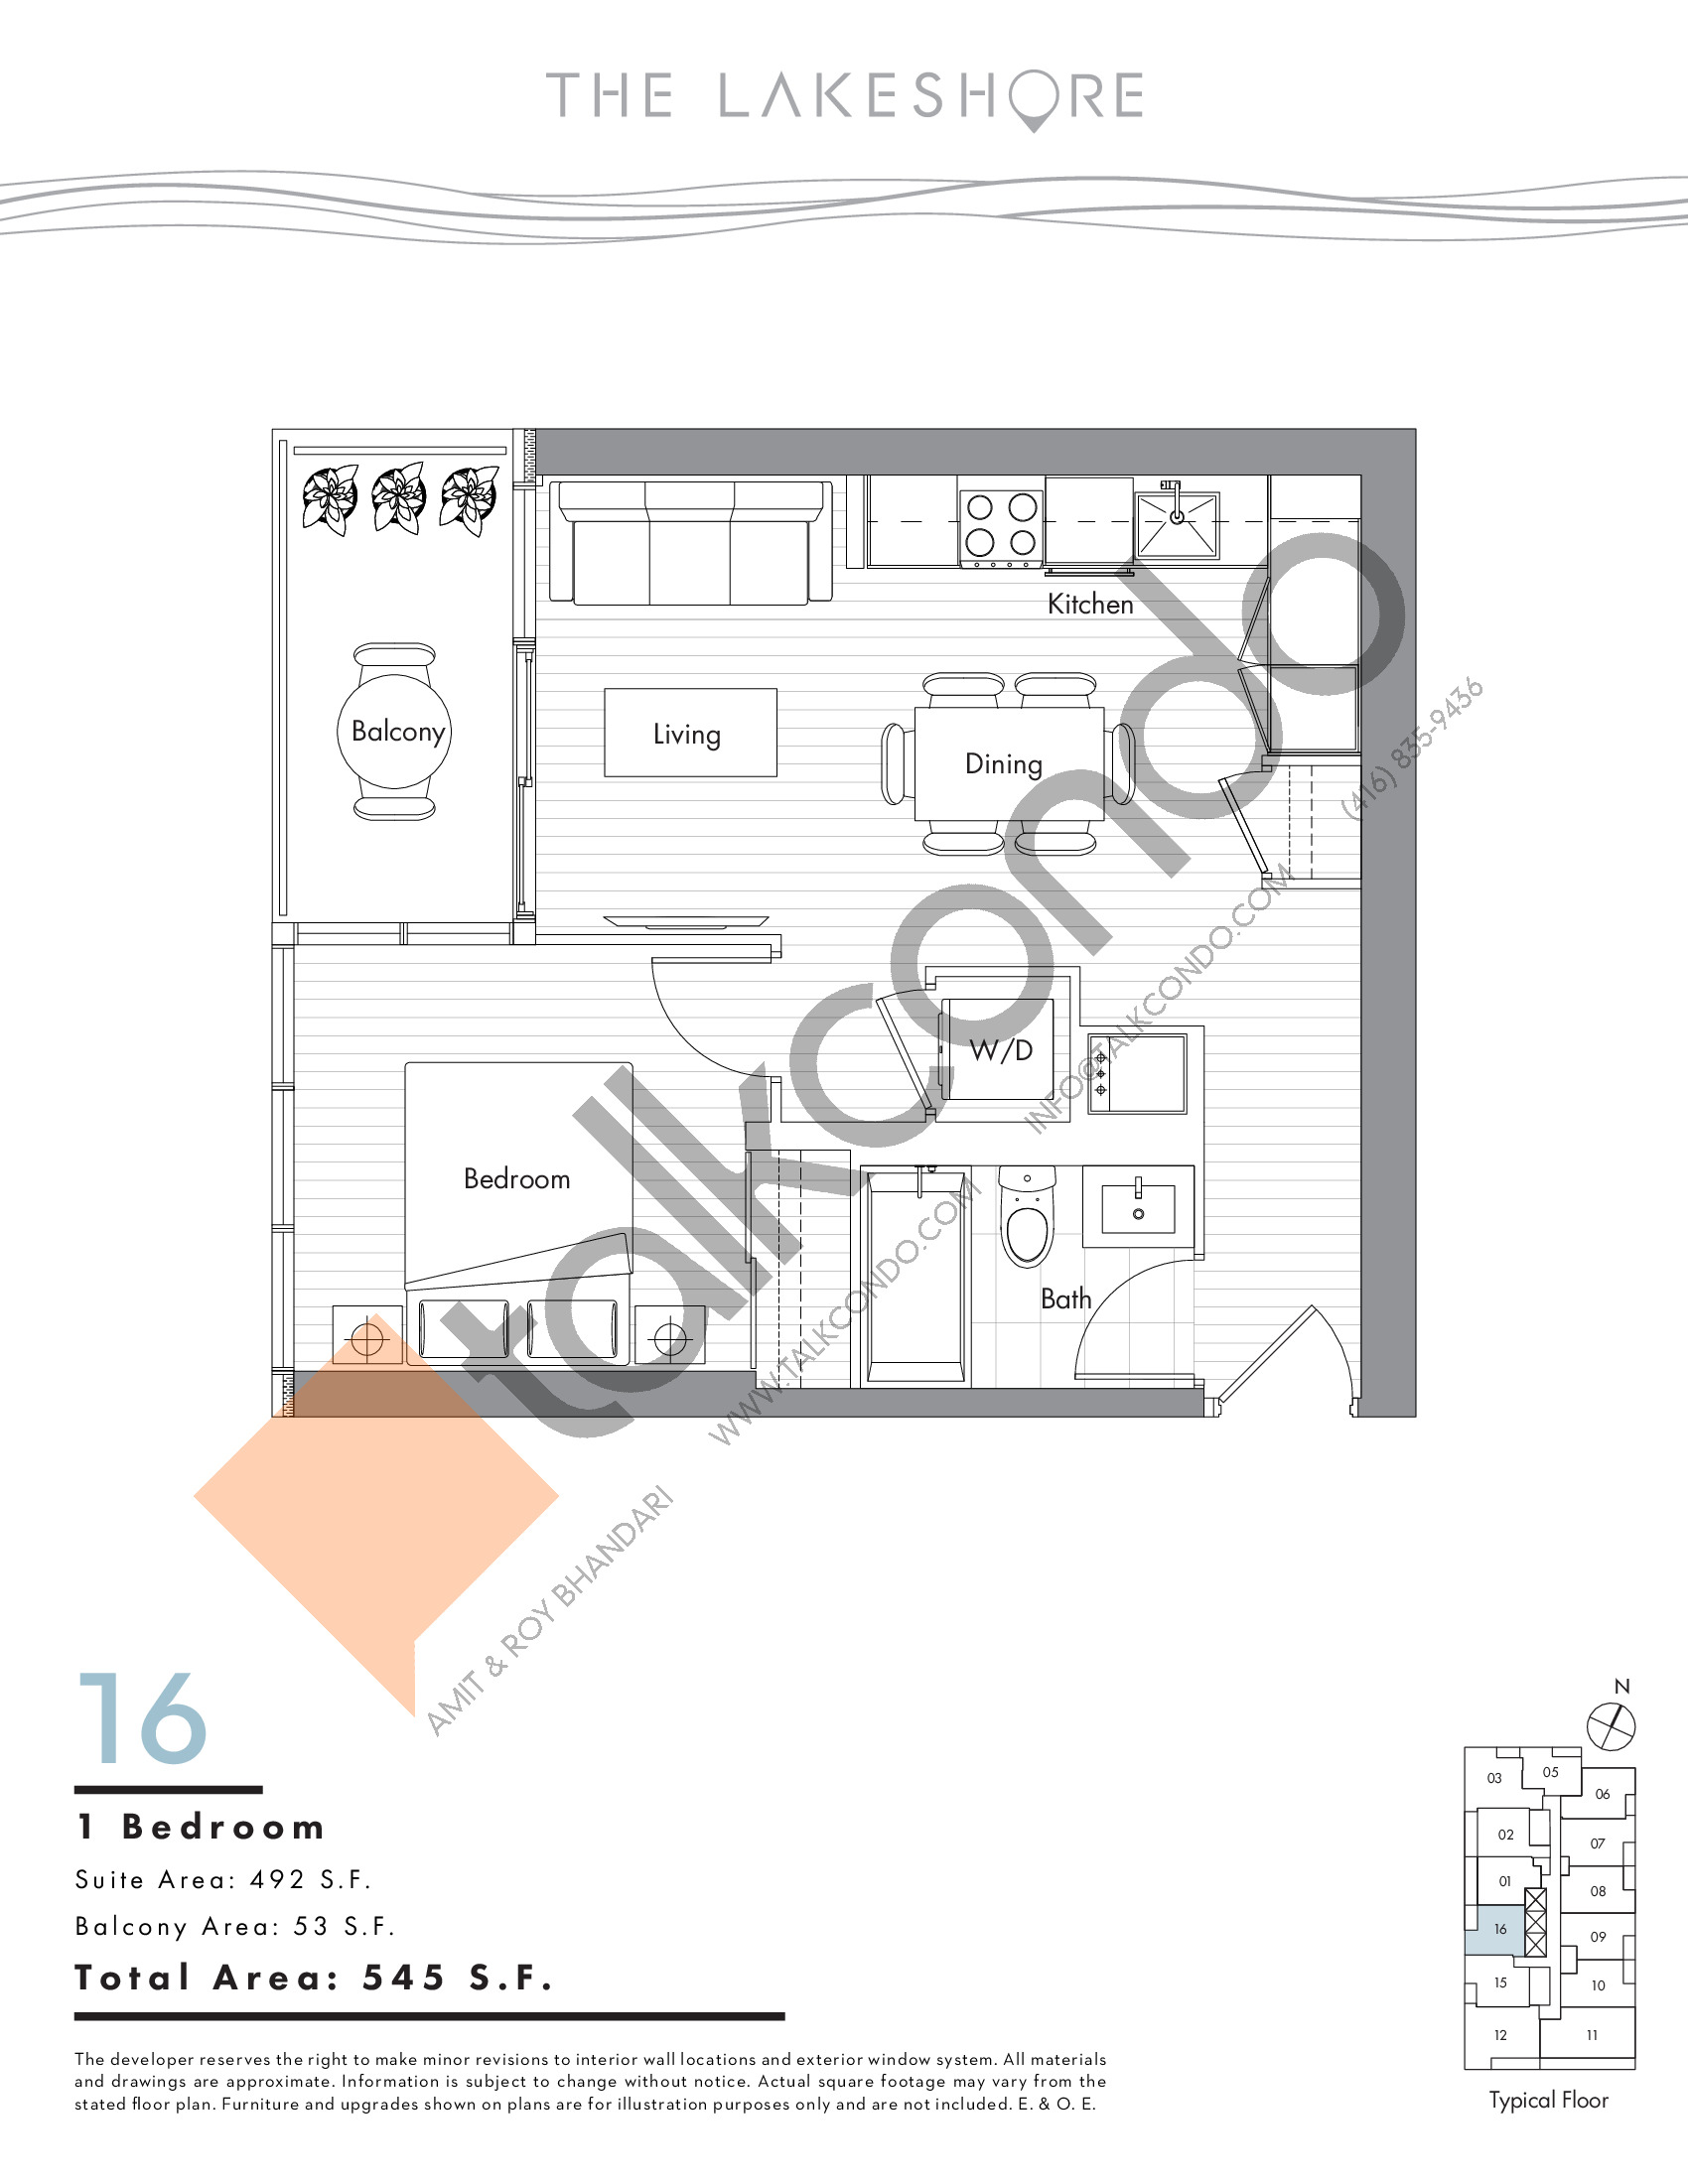 16 Floor Plan at The LakeShore Condos - 492 sq.ft